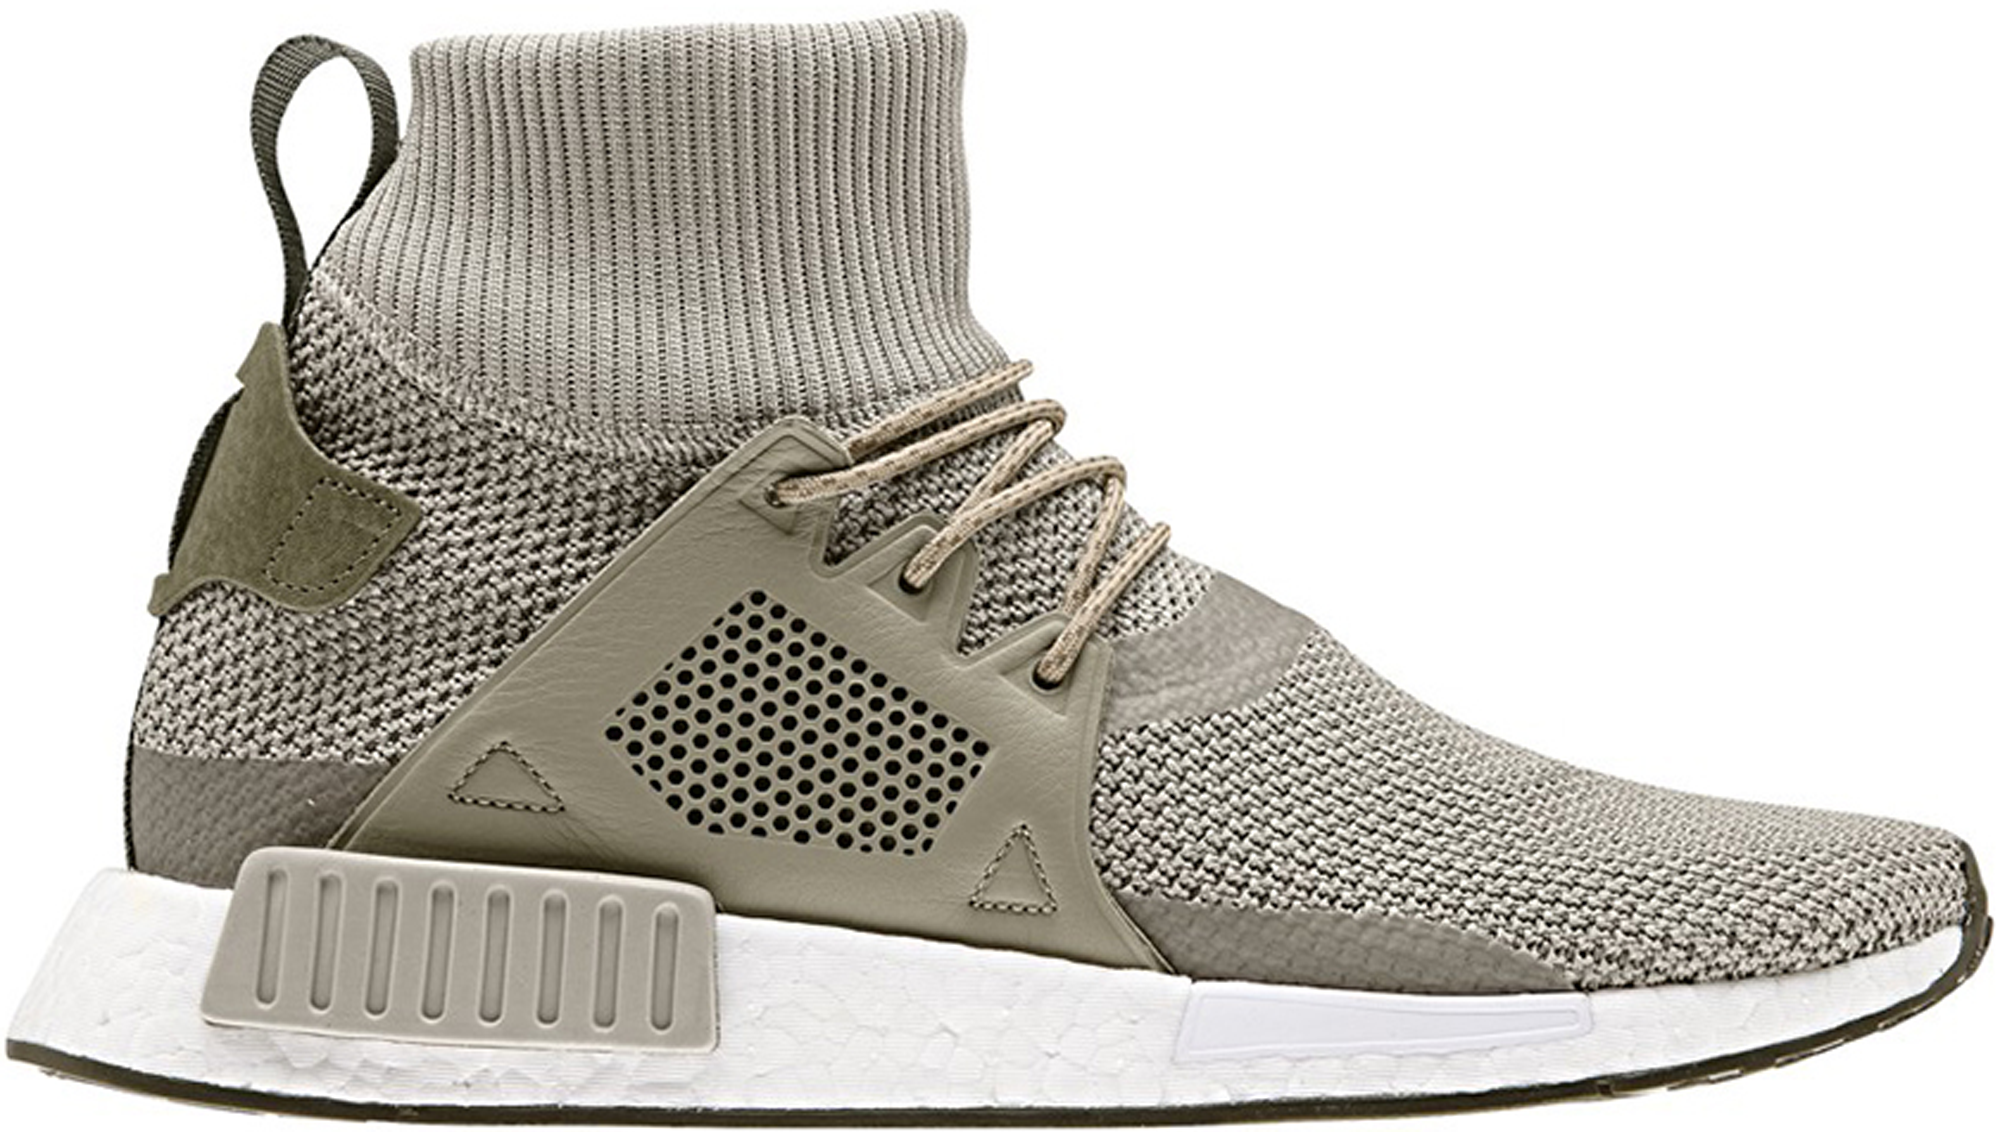 adidas NMD XR1 Winter Beige